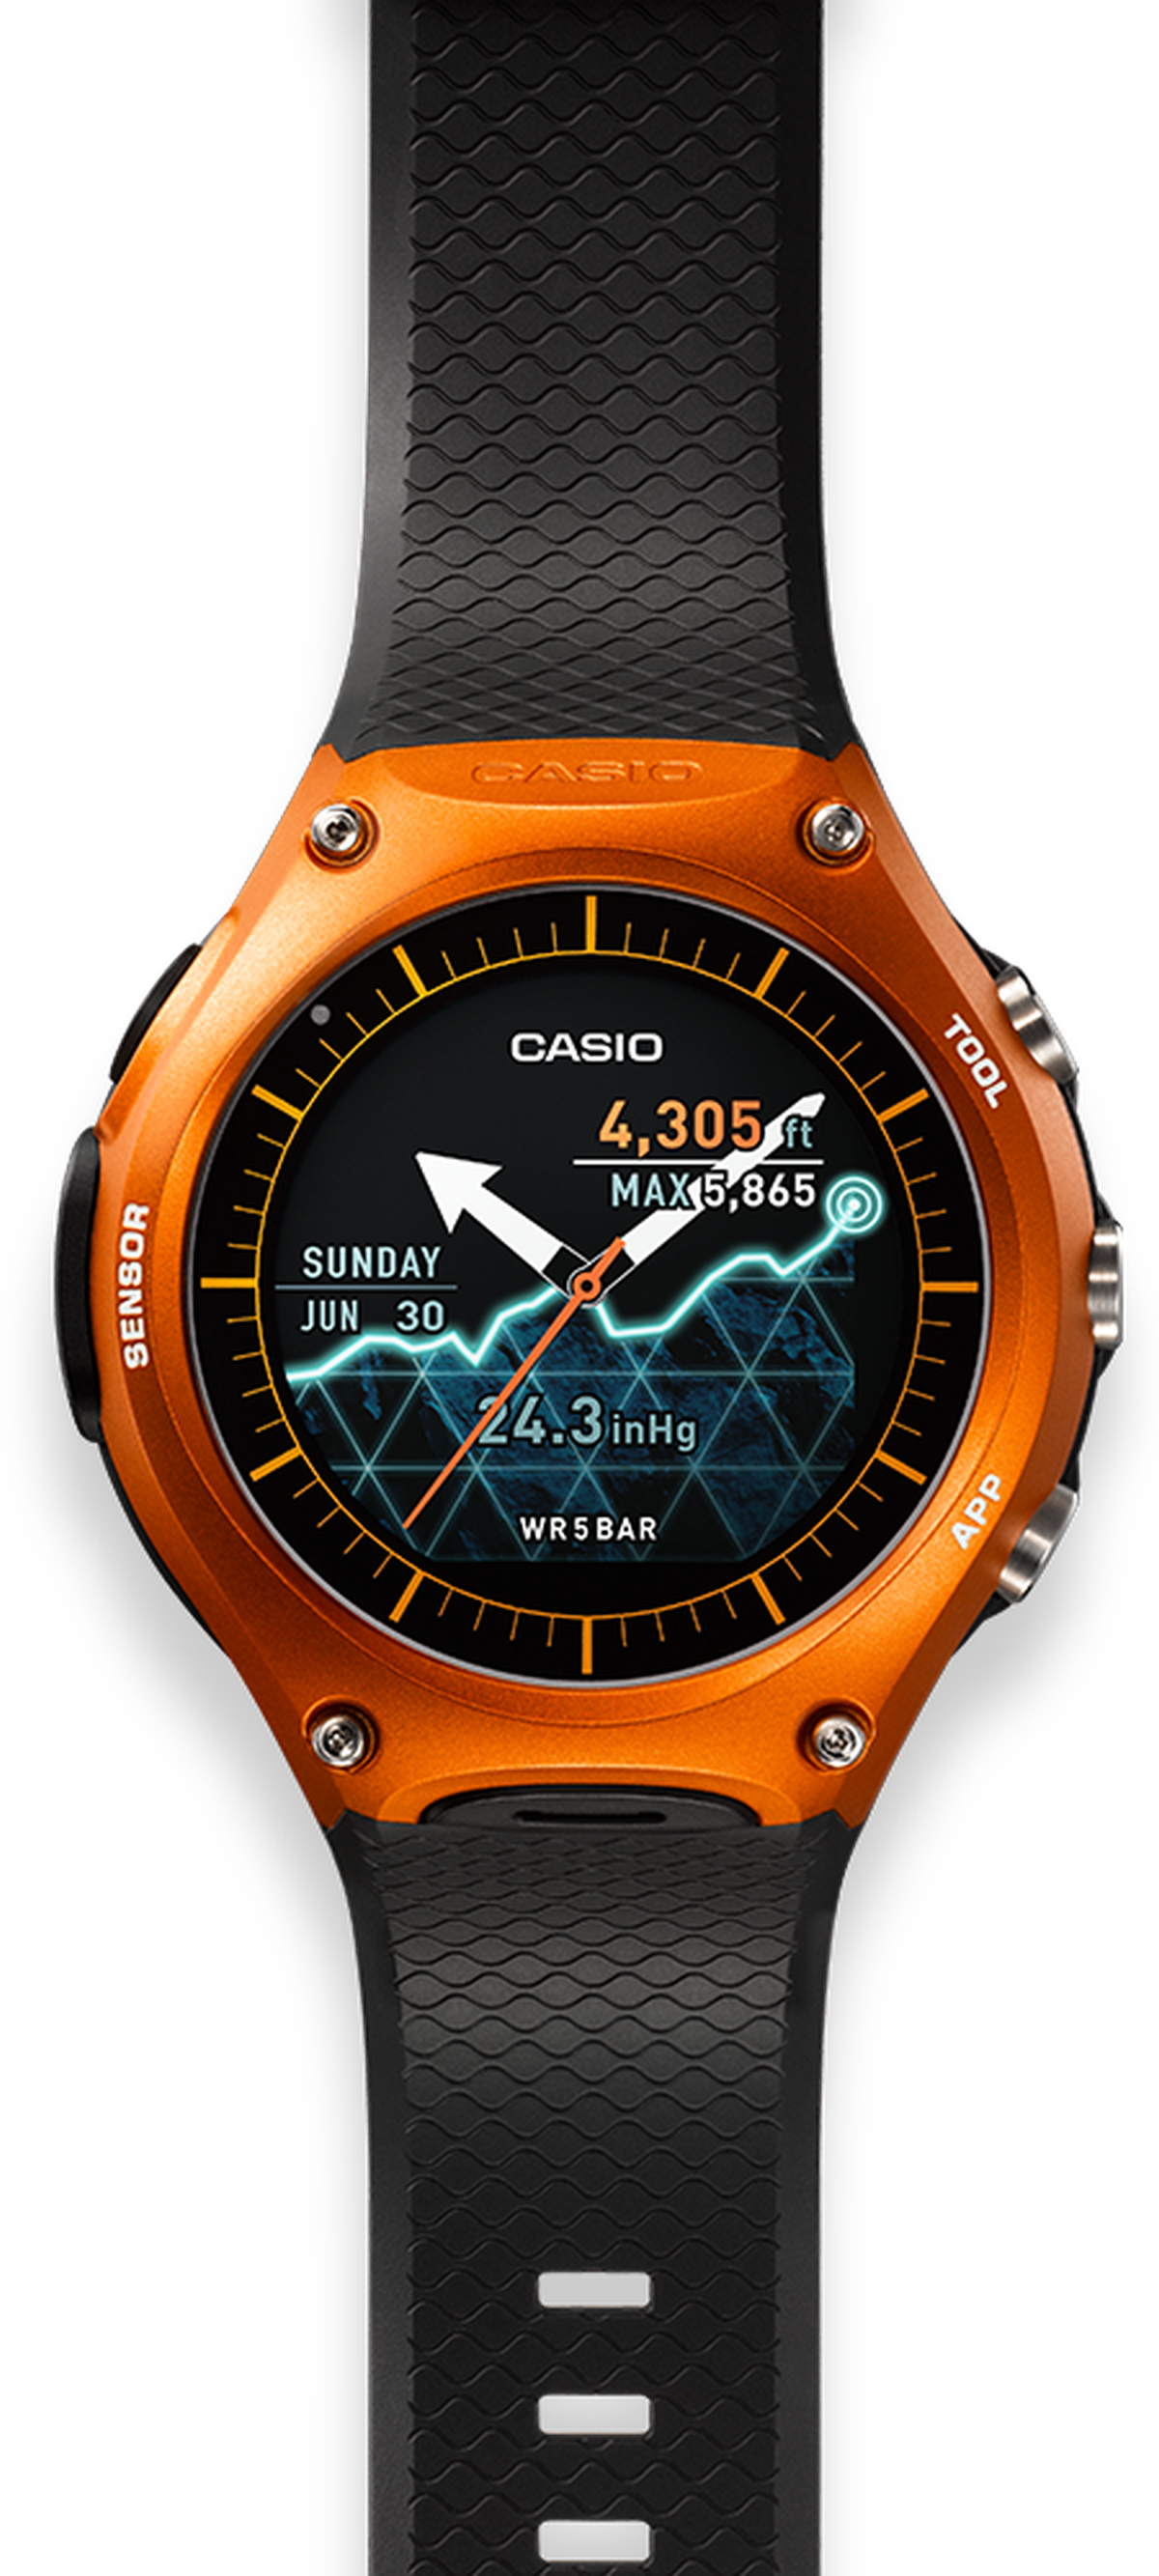 a centric stainless round and vox reviews evolution bezel gaming killers of guide lens smartwatch time casio best features smartwatches strange wrist steel encircling s sapphire history buttons as face watches watch with the pvd fenix hr outdoor